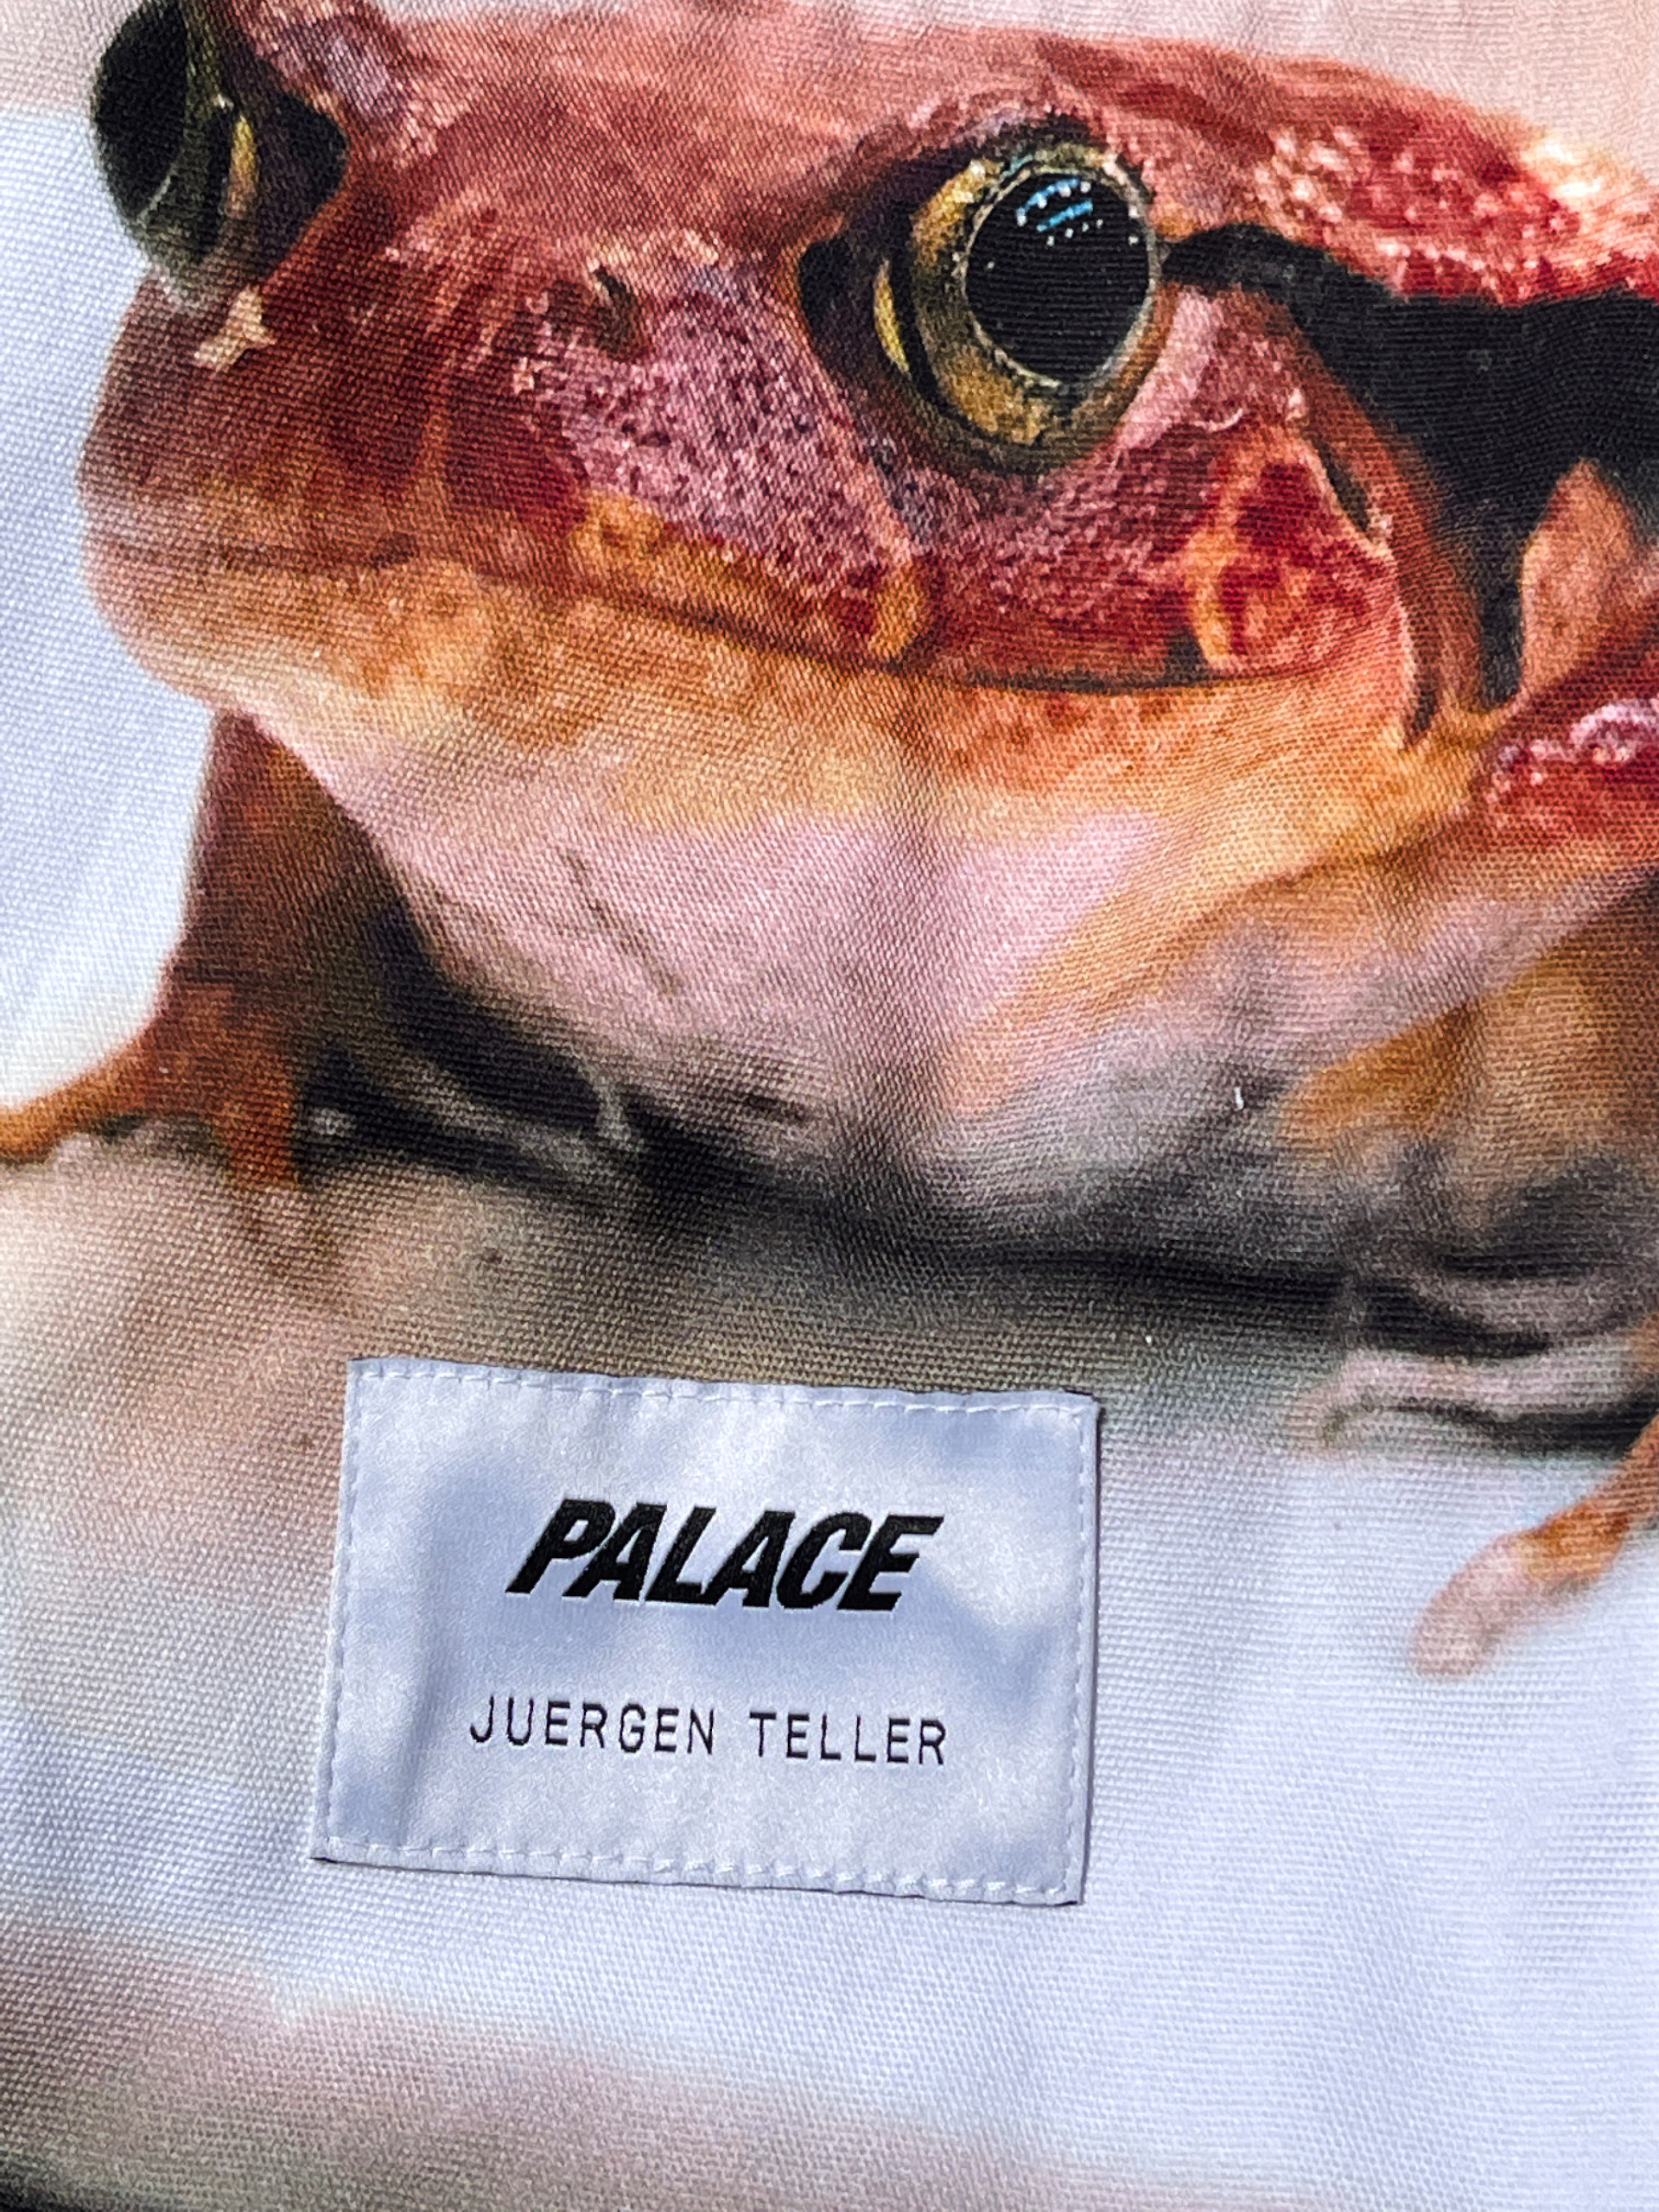 The Palace and Juergen Teller capsule collection.